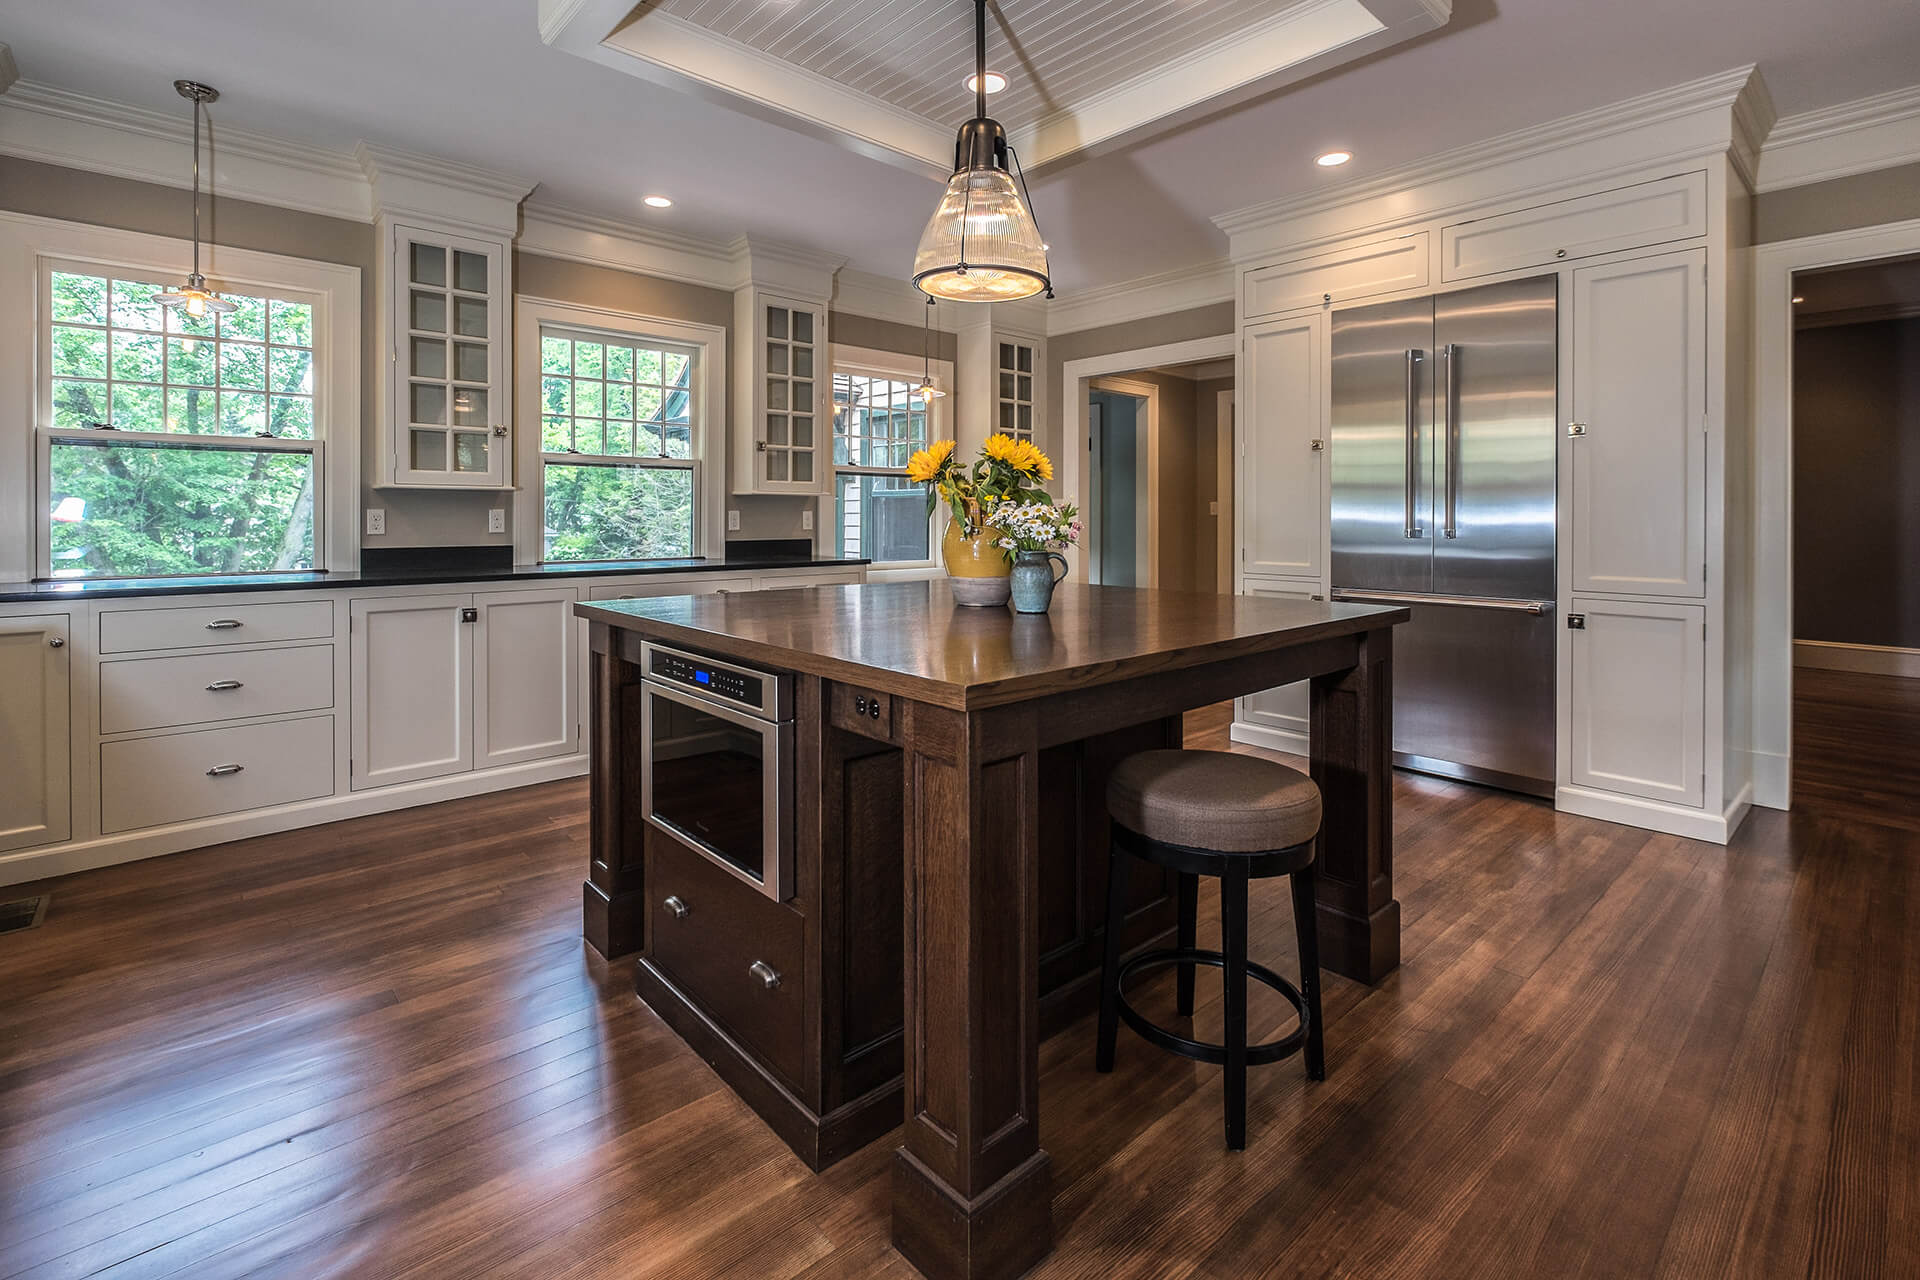 Kitchen cabinet hardware featured on Kennebec Company design